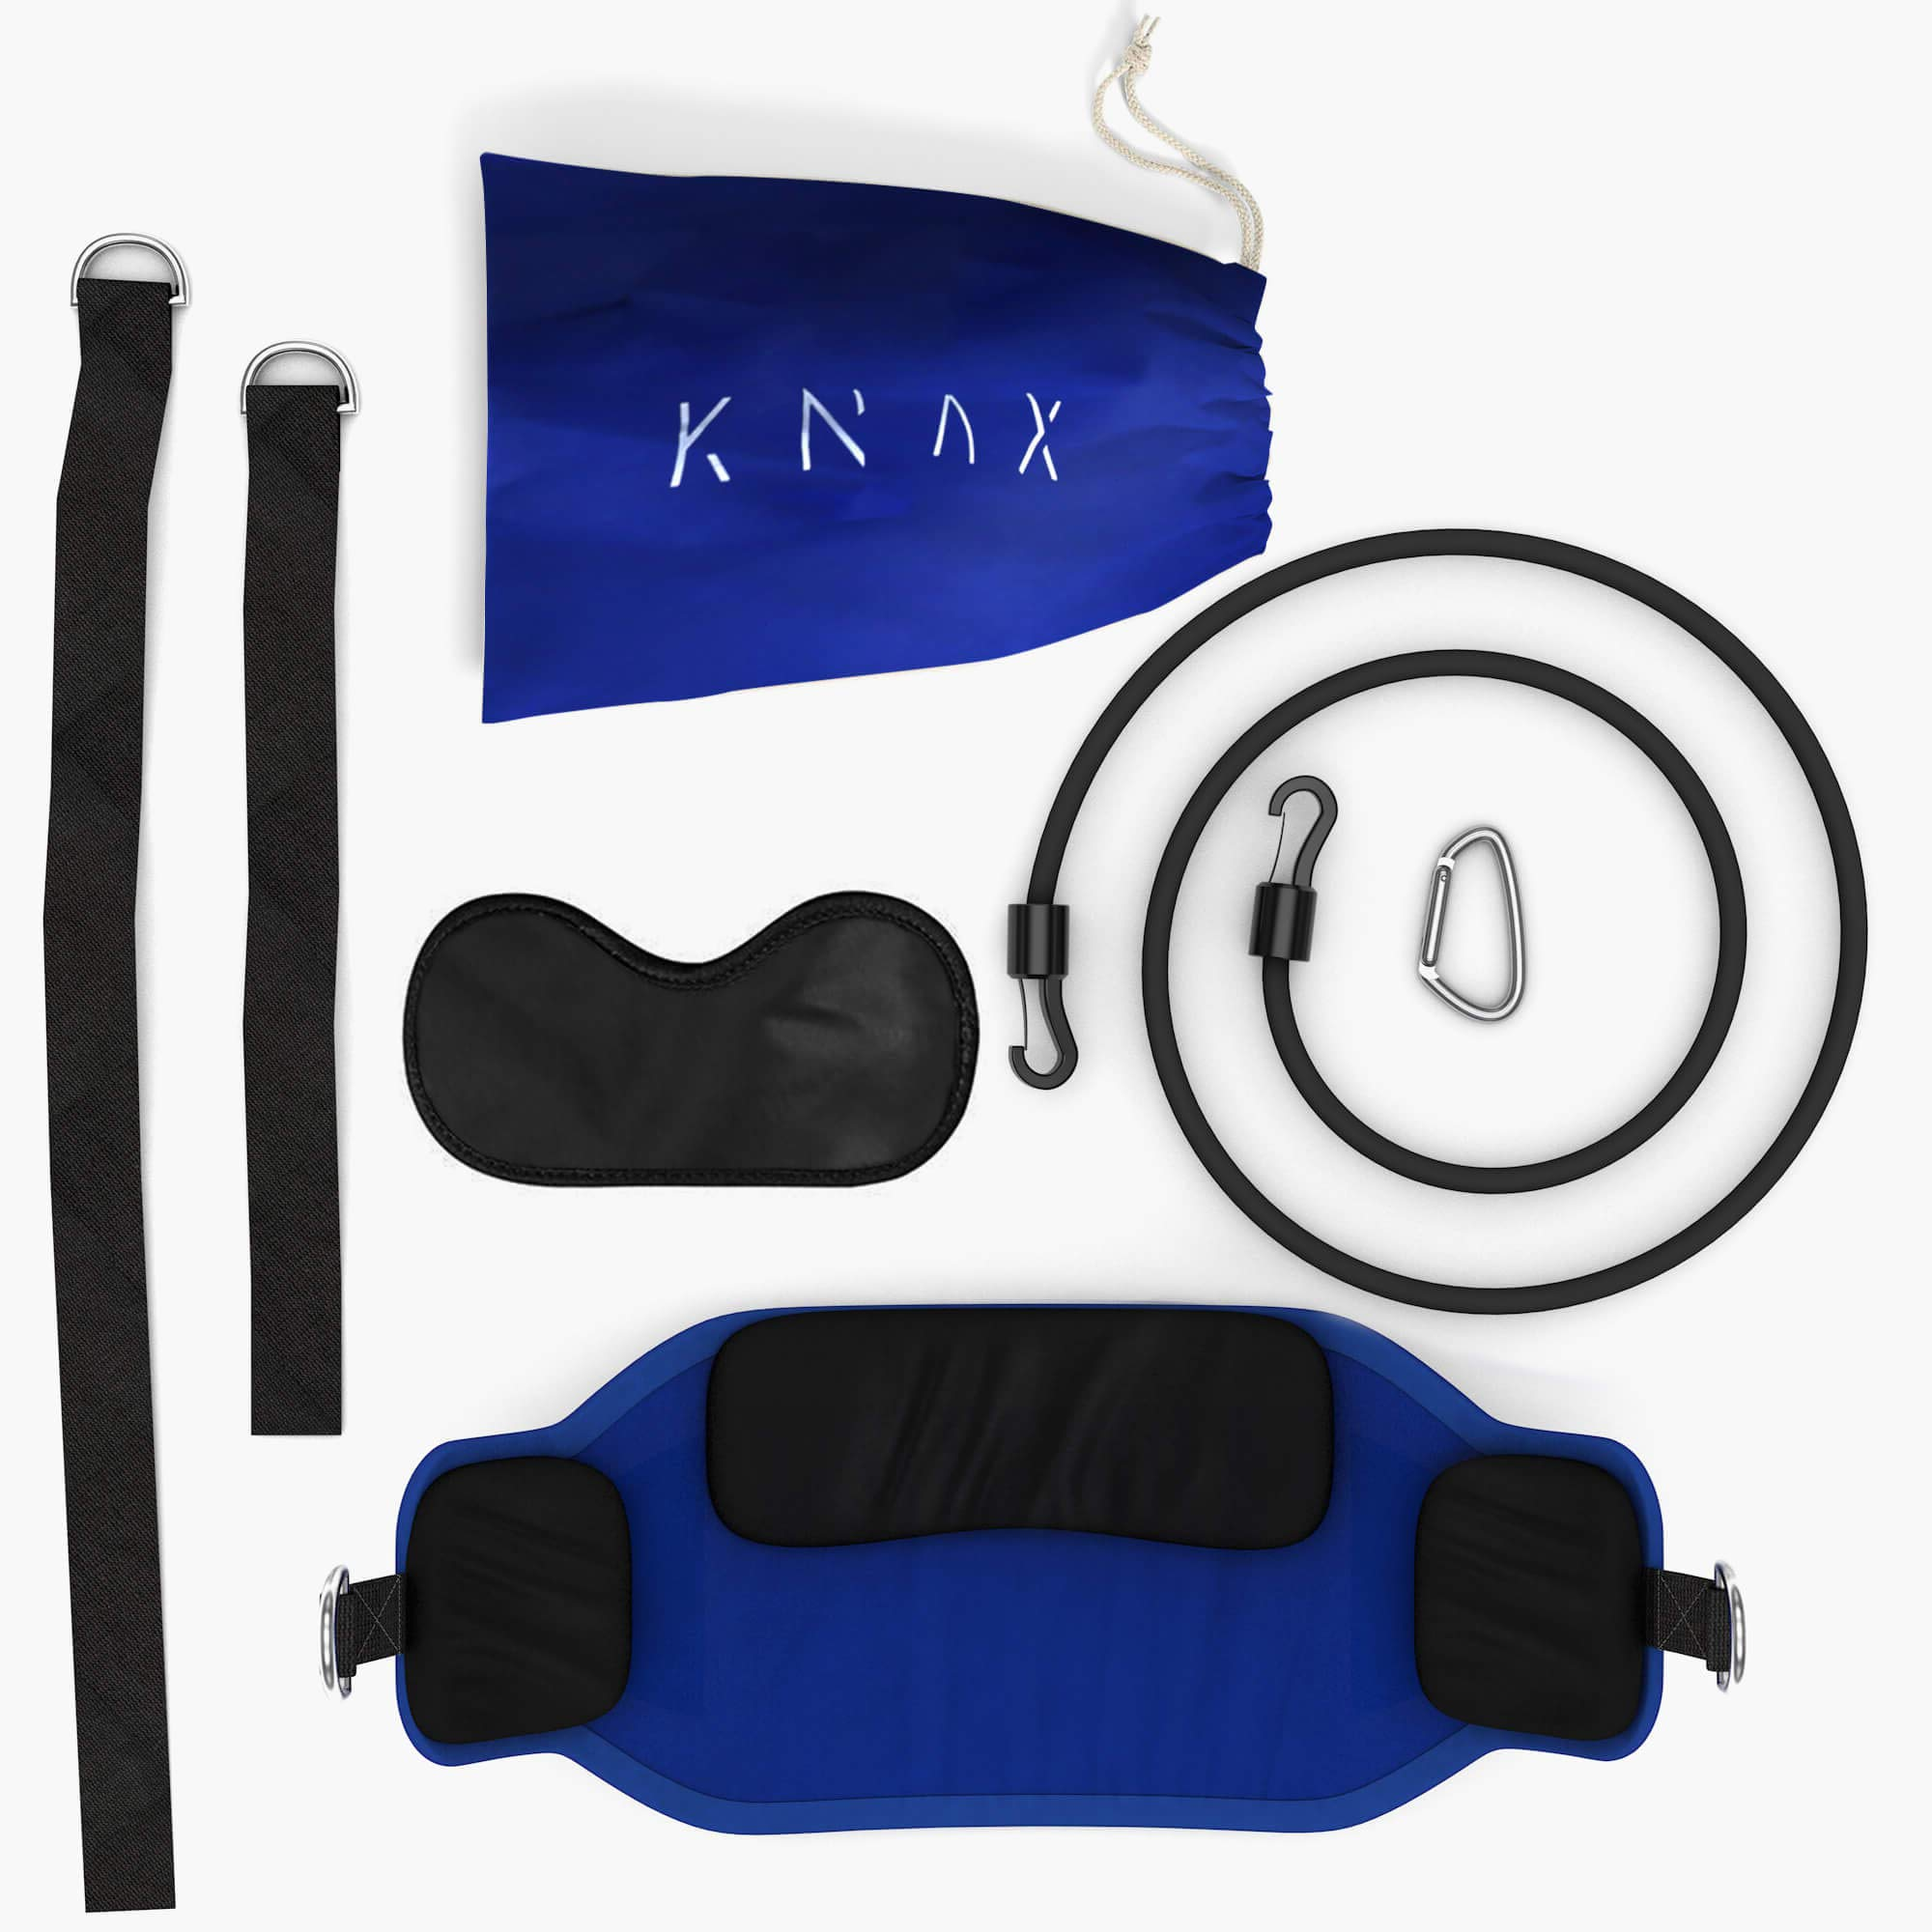 Neck Hammock Cervical Traction Device - Portable for Travel | Neck, Head, Shoulder Pain Relief | Blue | By Knax